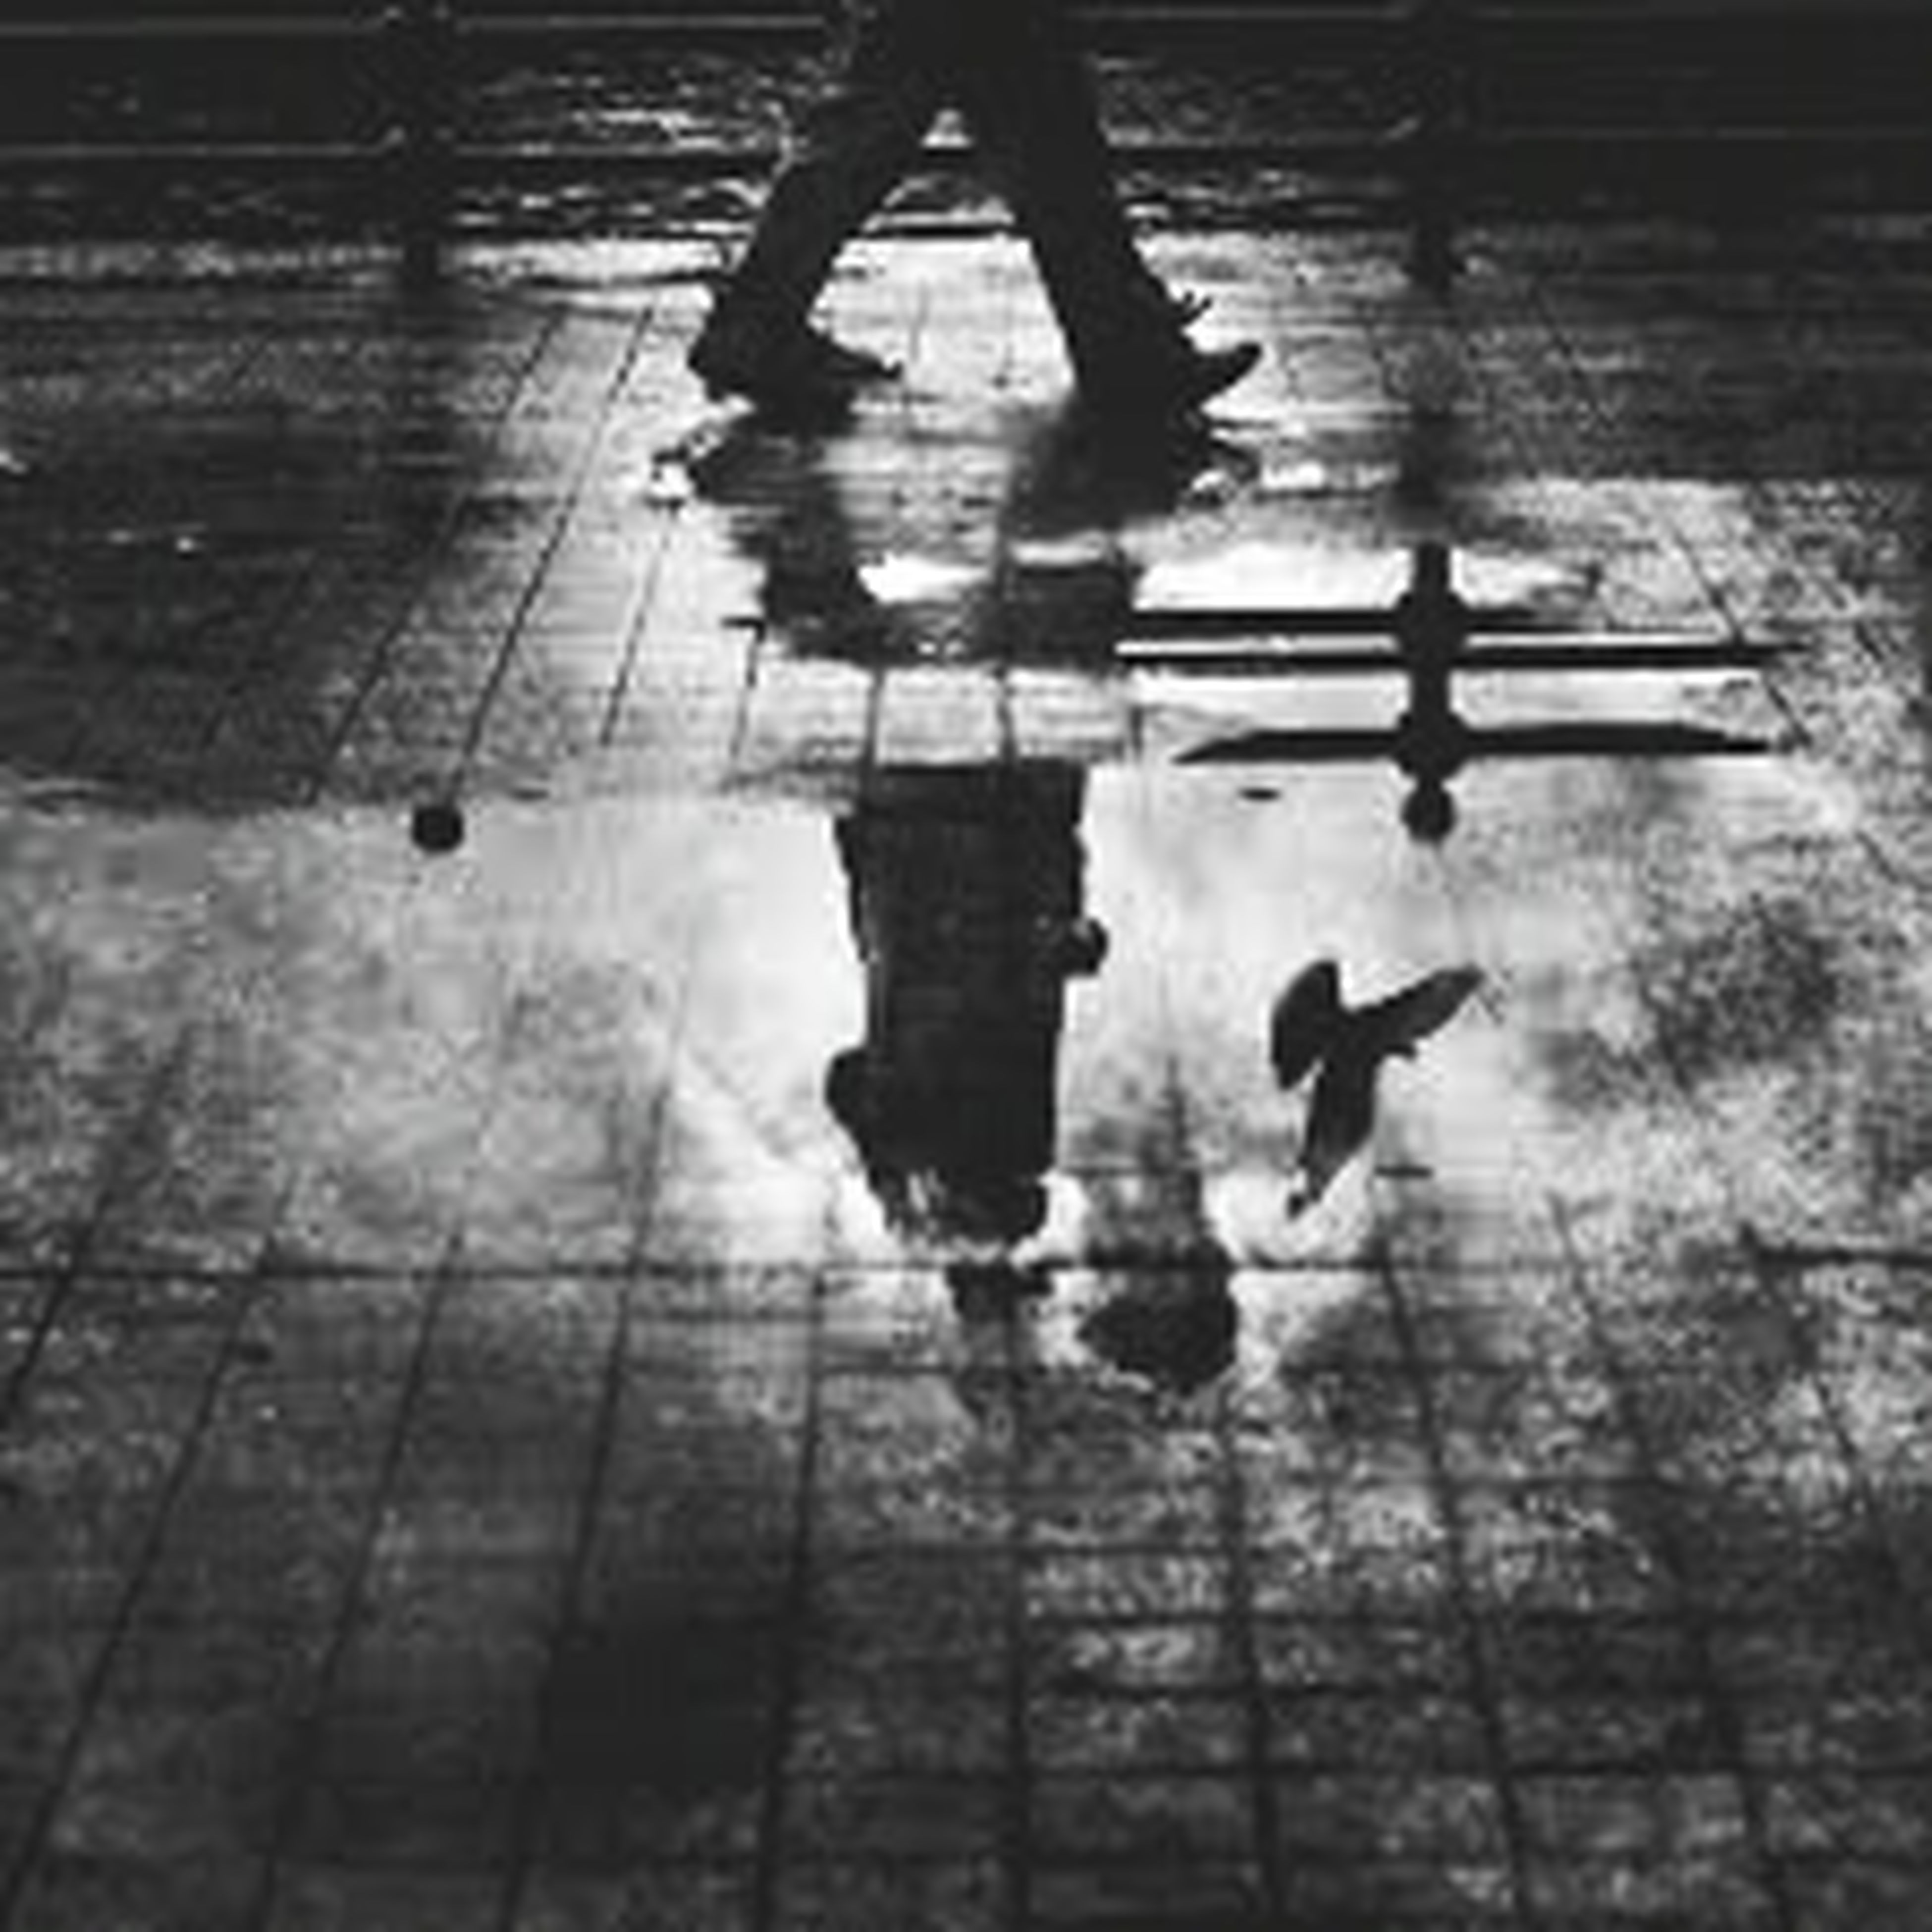 lifestyles, men, leisure activity, walking, reflection, low section, person, high angle view, shadow, silhouette, puddle, togetherness, water, standing, street